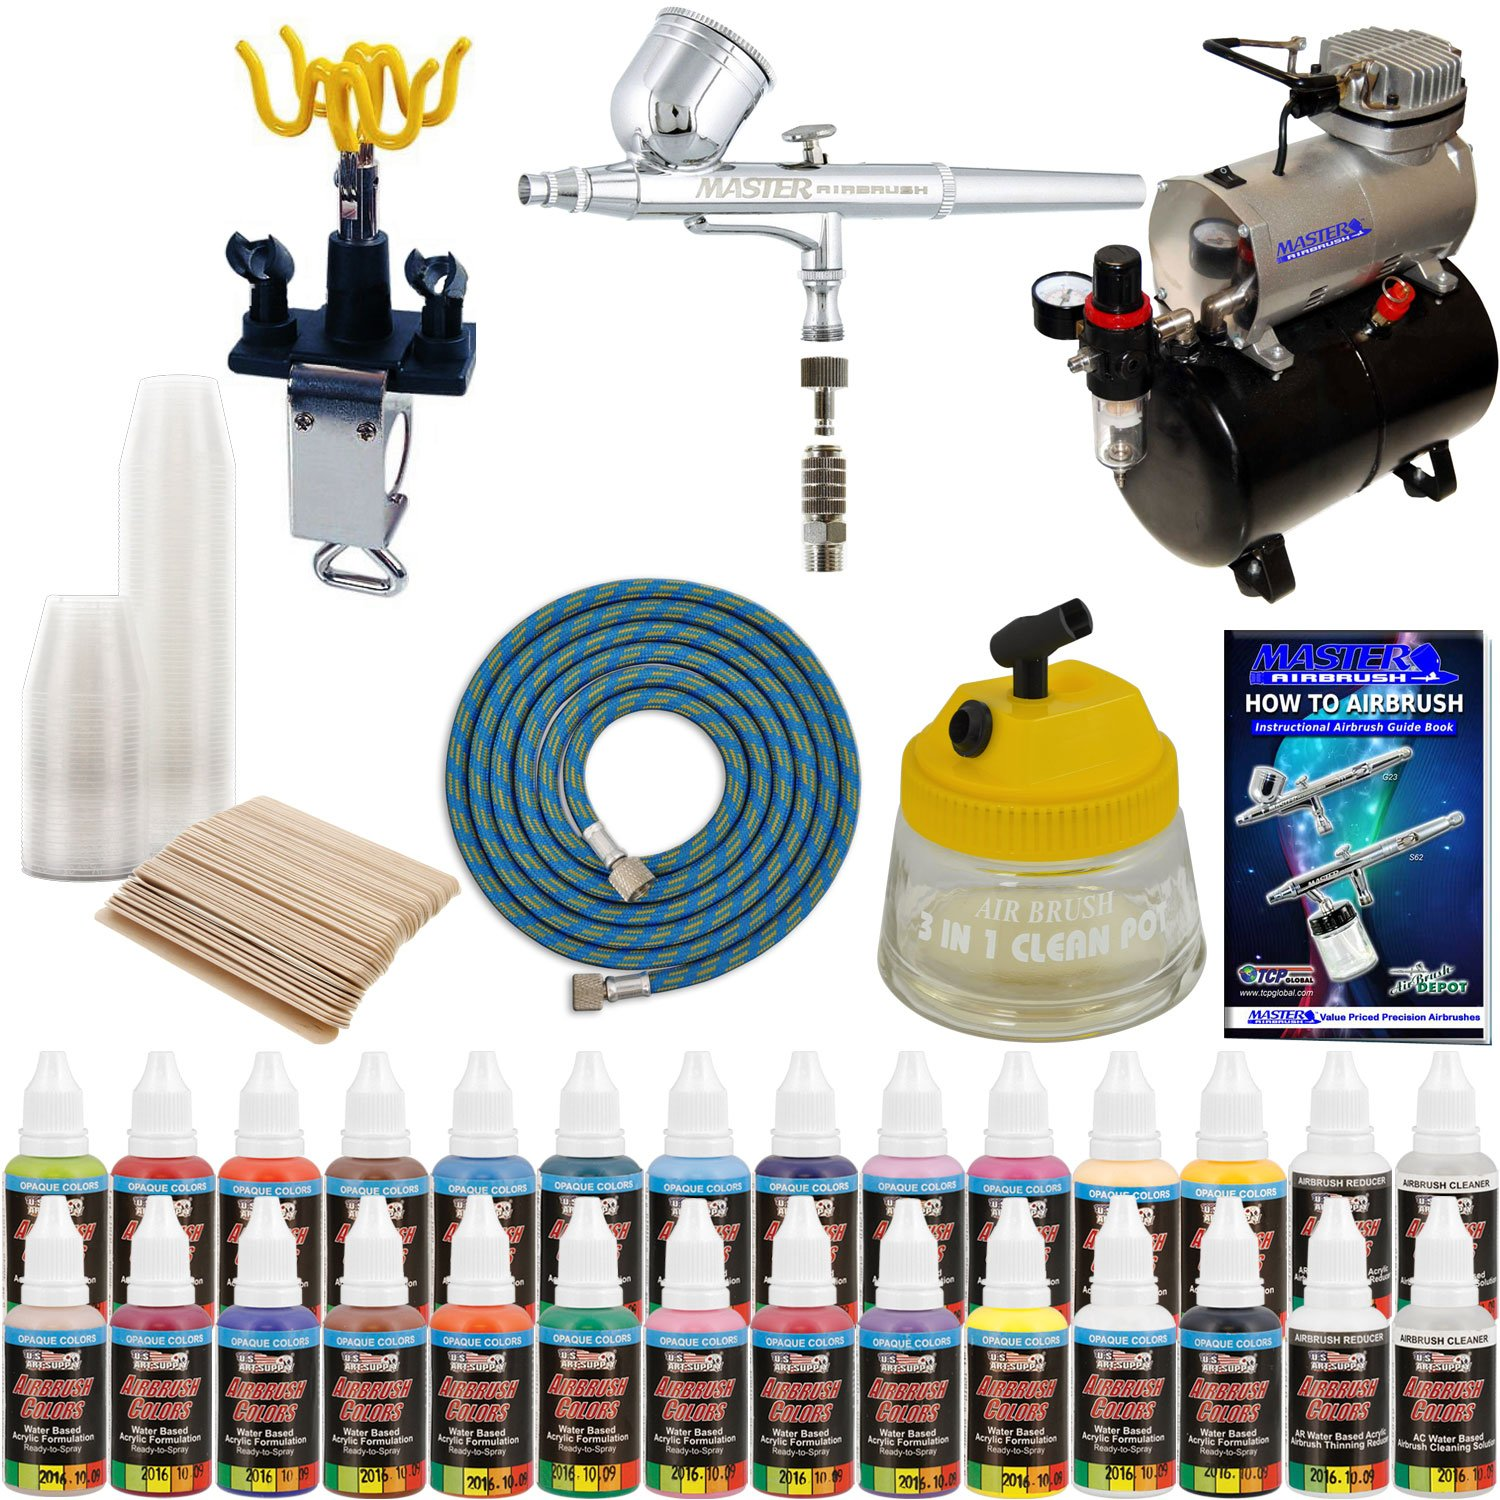 MASTER G22 Multi-purpose Airbrush Kit With Airbrush Depot Compressor and 24 color Set of Paints by Master Airbrush (Image #6)